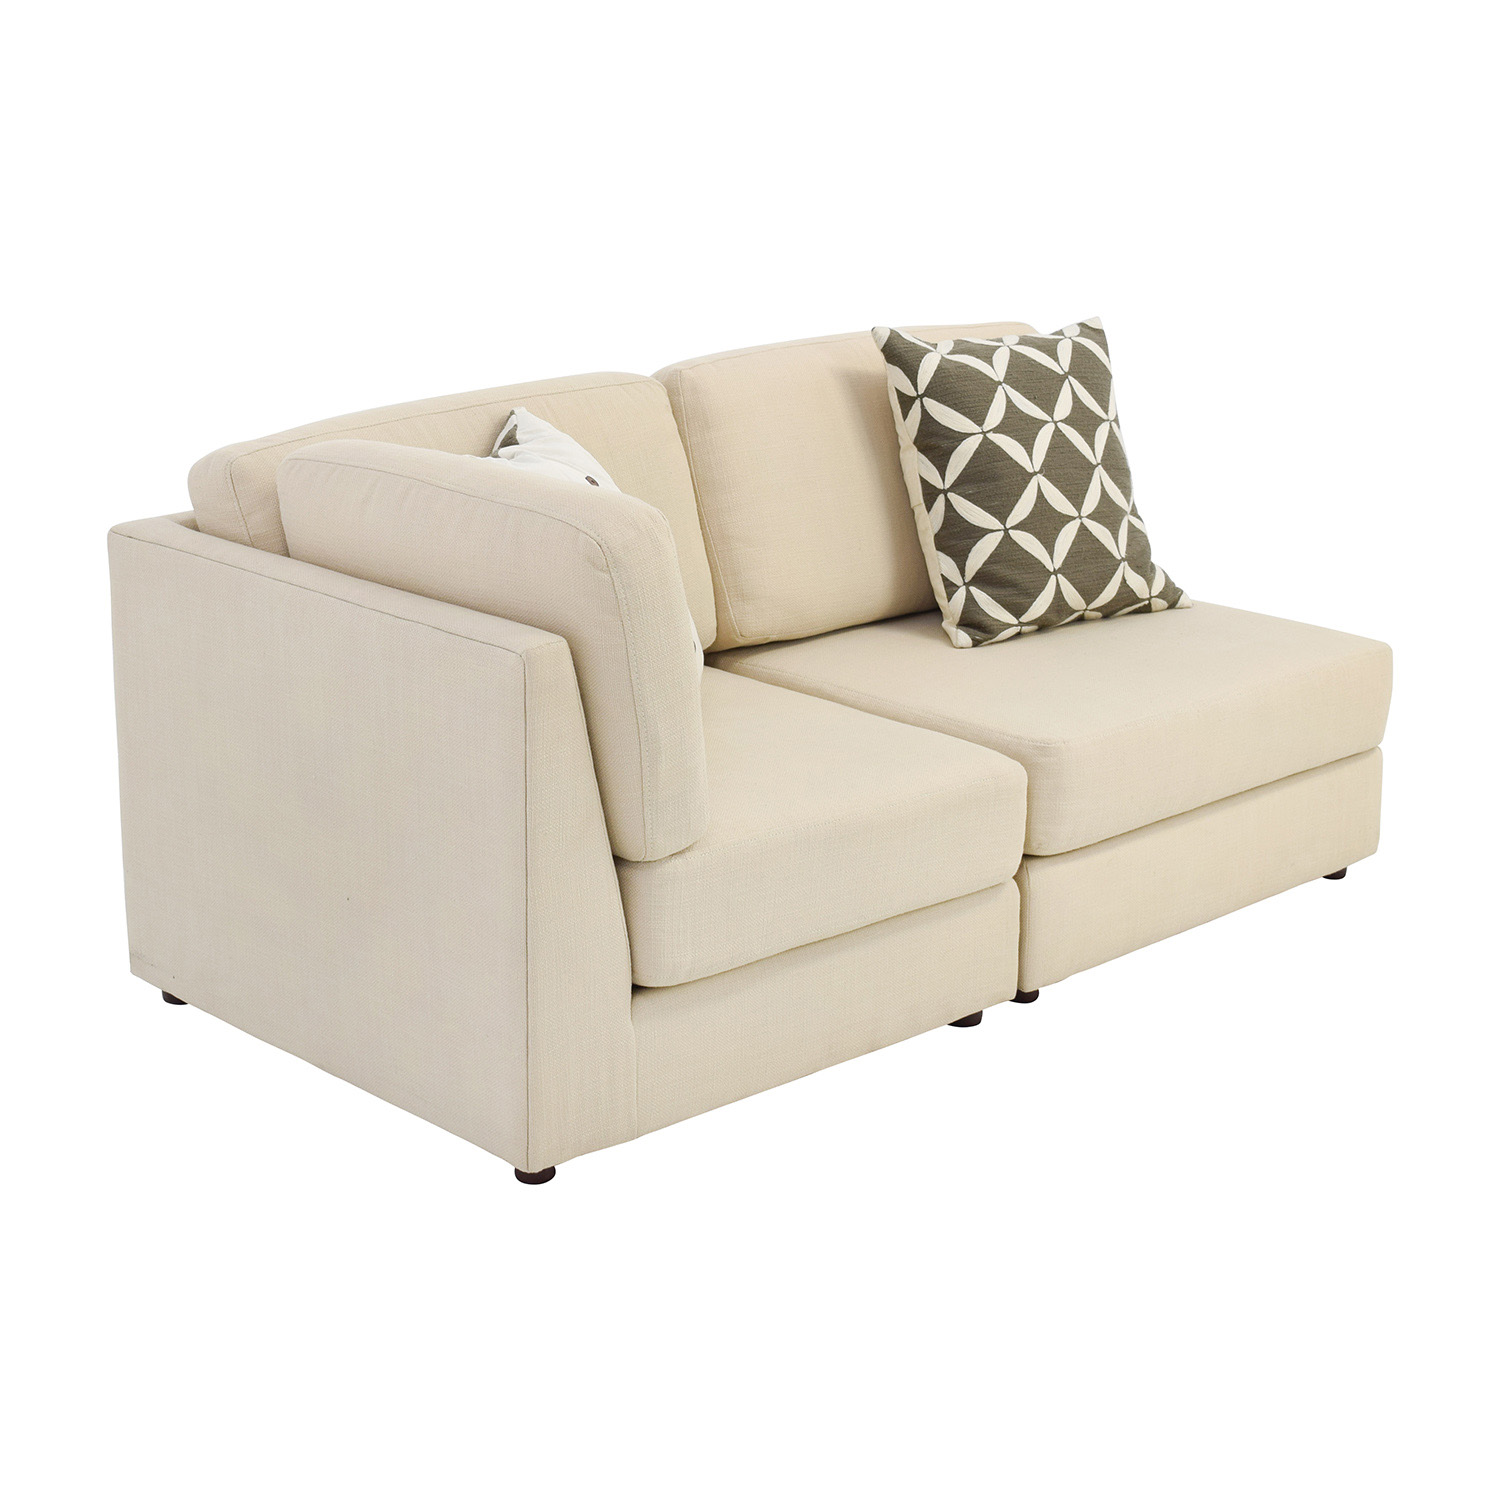 76 off west elm west elm cream chaise sofa or two for Best west elm sofa